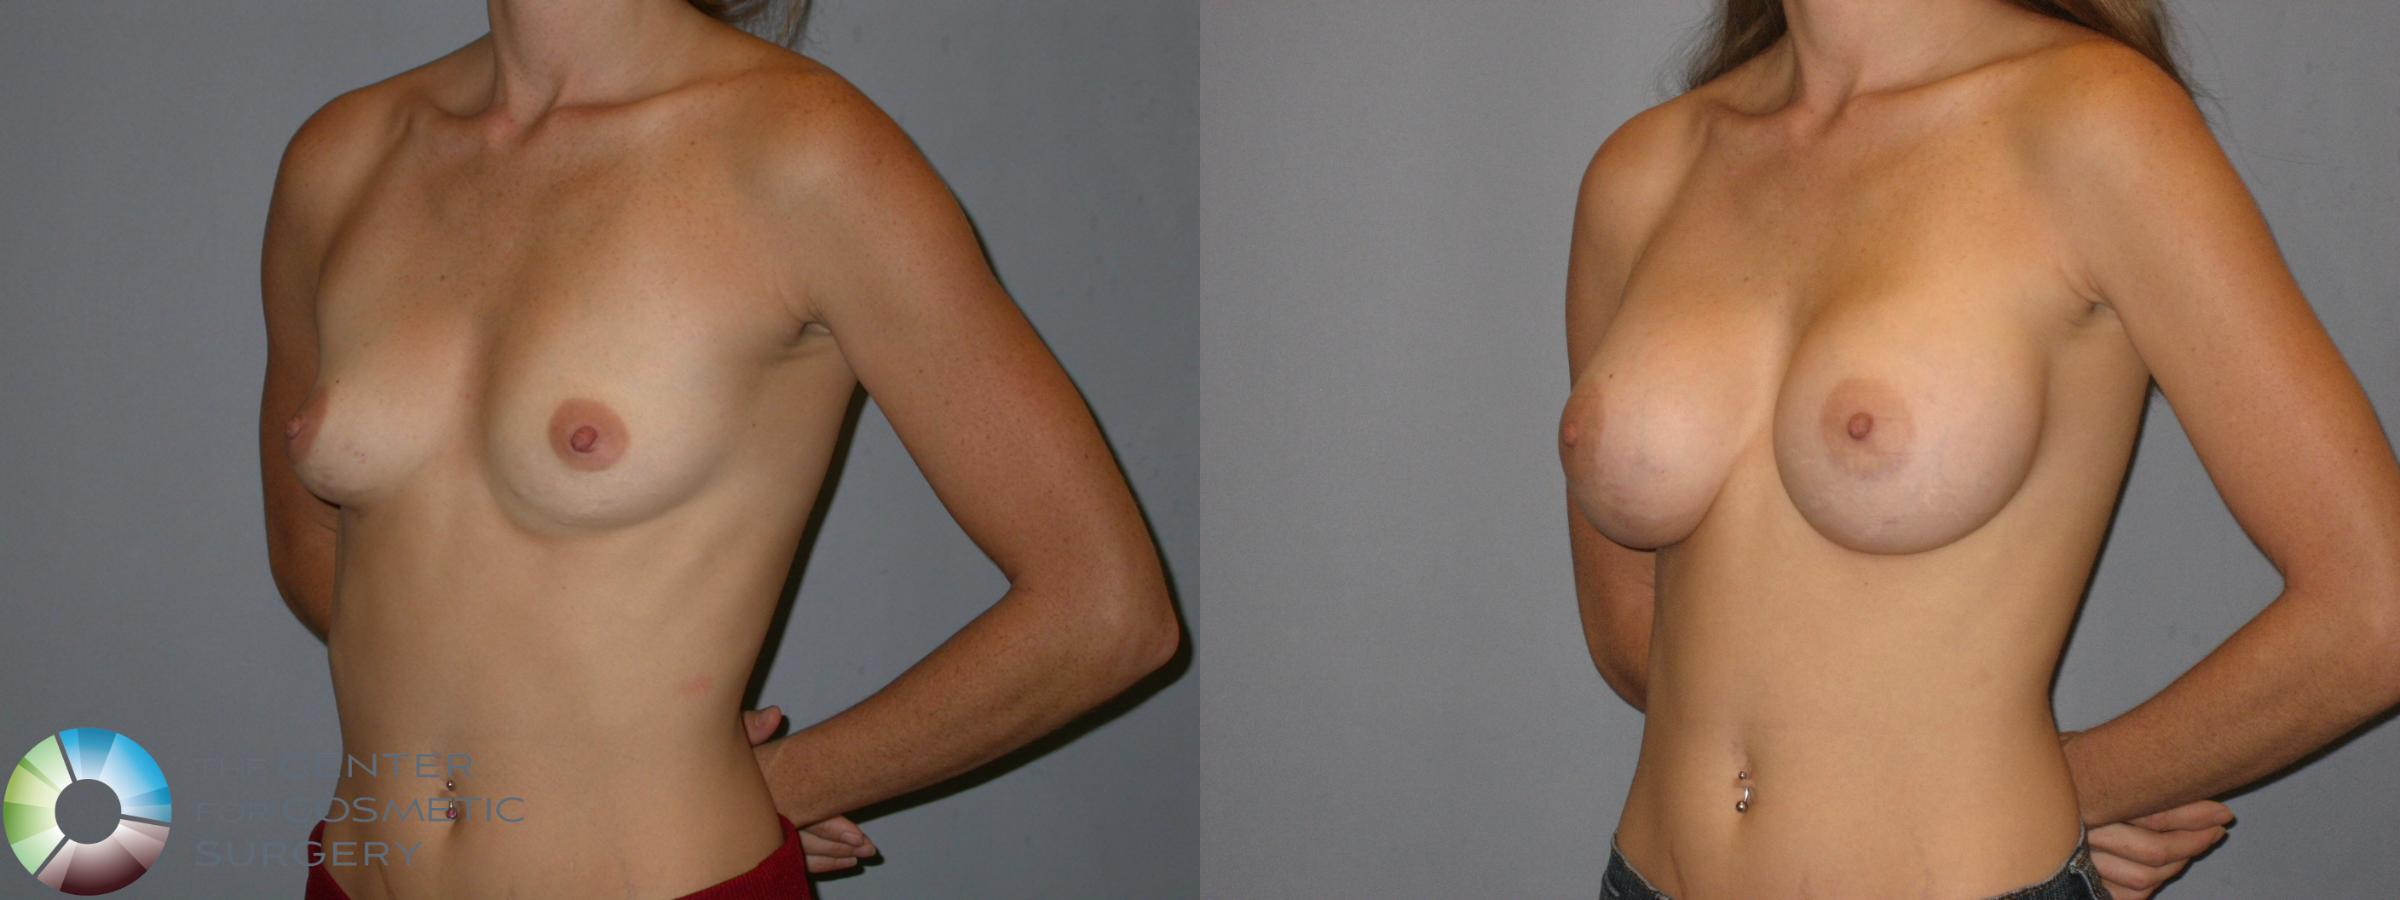 Breast Augmentation Case 175 Before & After View #2 | Golden, CO | The Center for Cosmetic Surgery